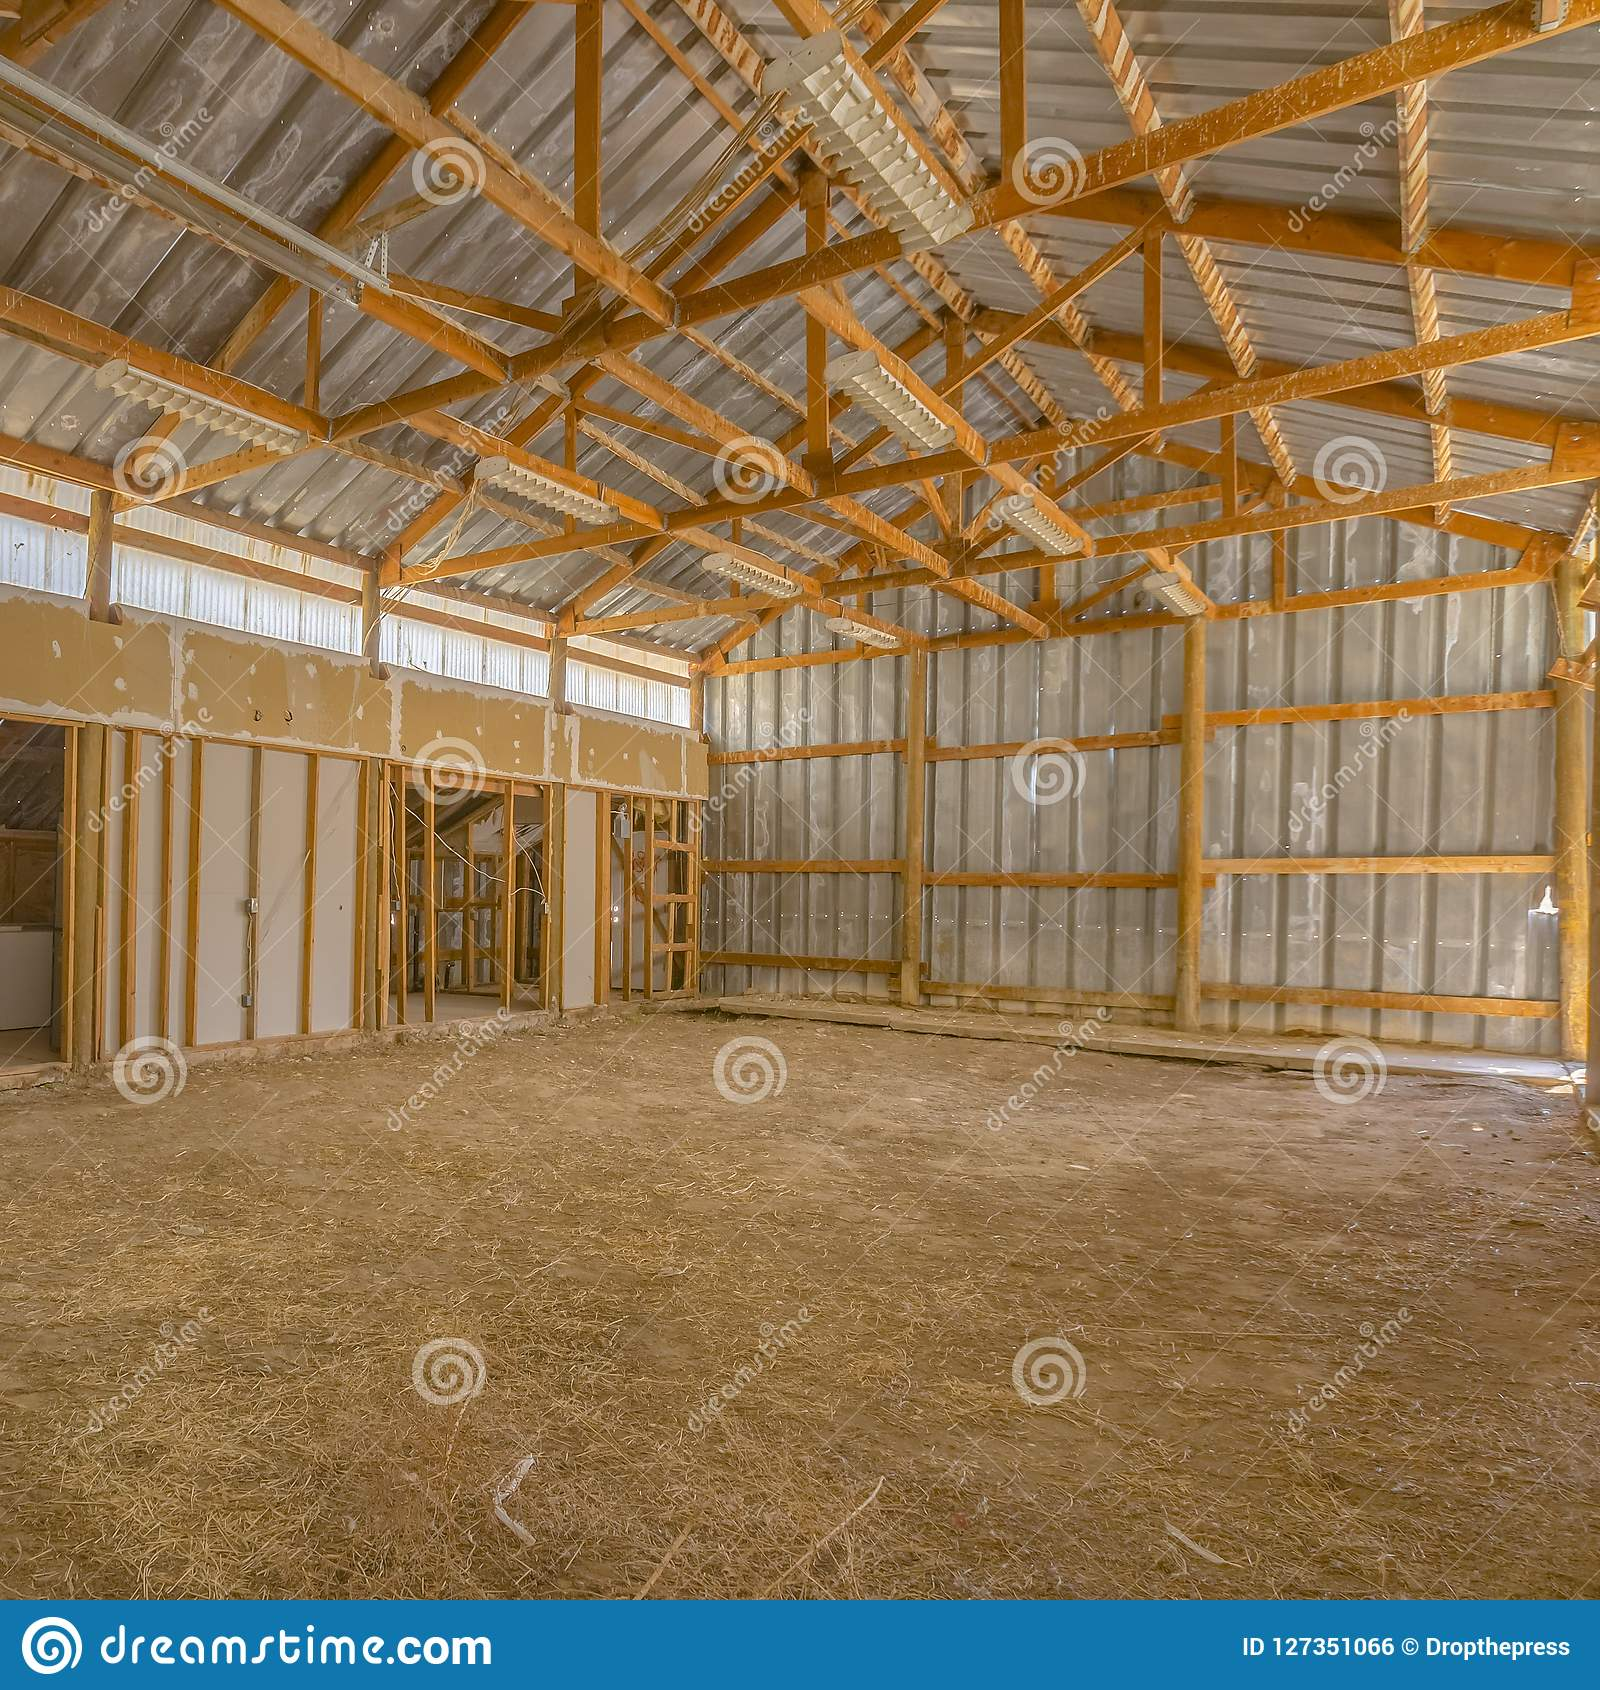 Barn Metal View Of A Barn Interior With Metal Roof And Wall Stock Photo